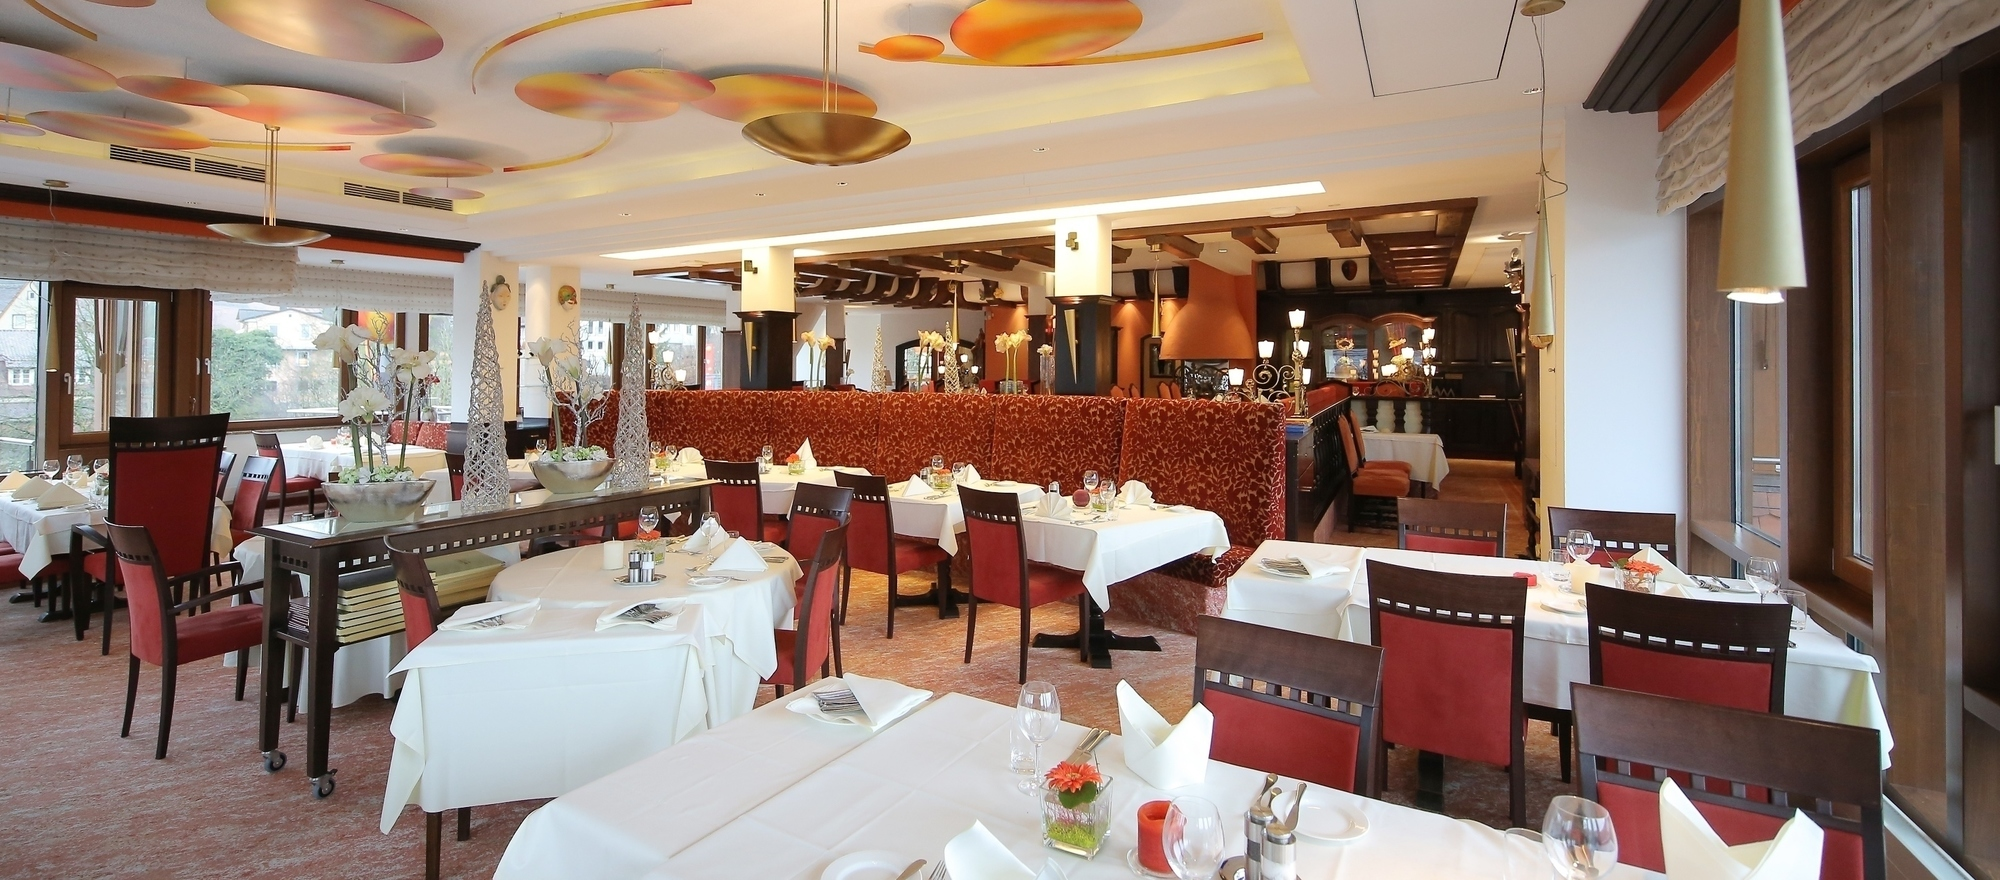 Restaurant at the Ringhotel Hohenlohe in Schwaebisch Hall, 4 stars superior hotel in the Heilbronner Land region